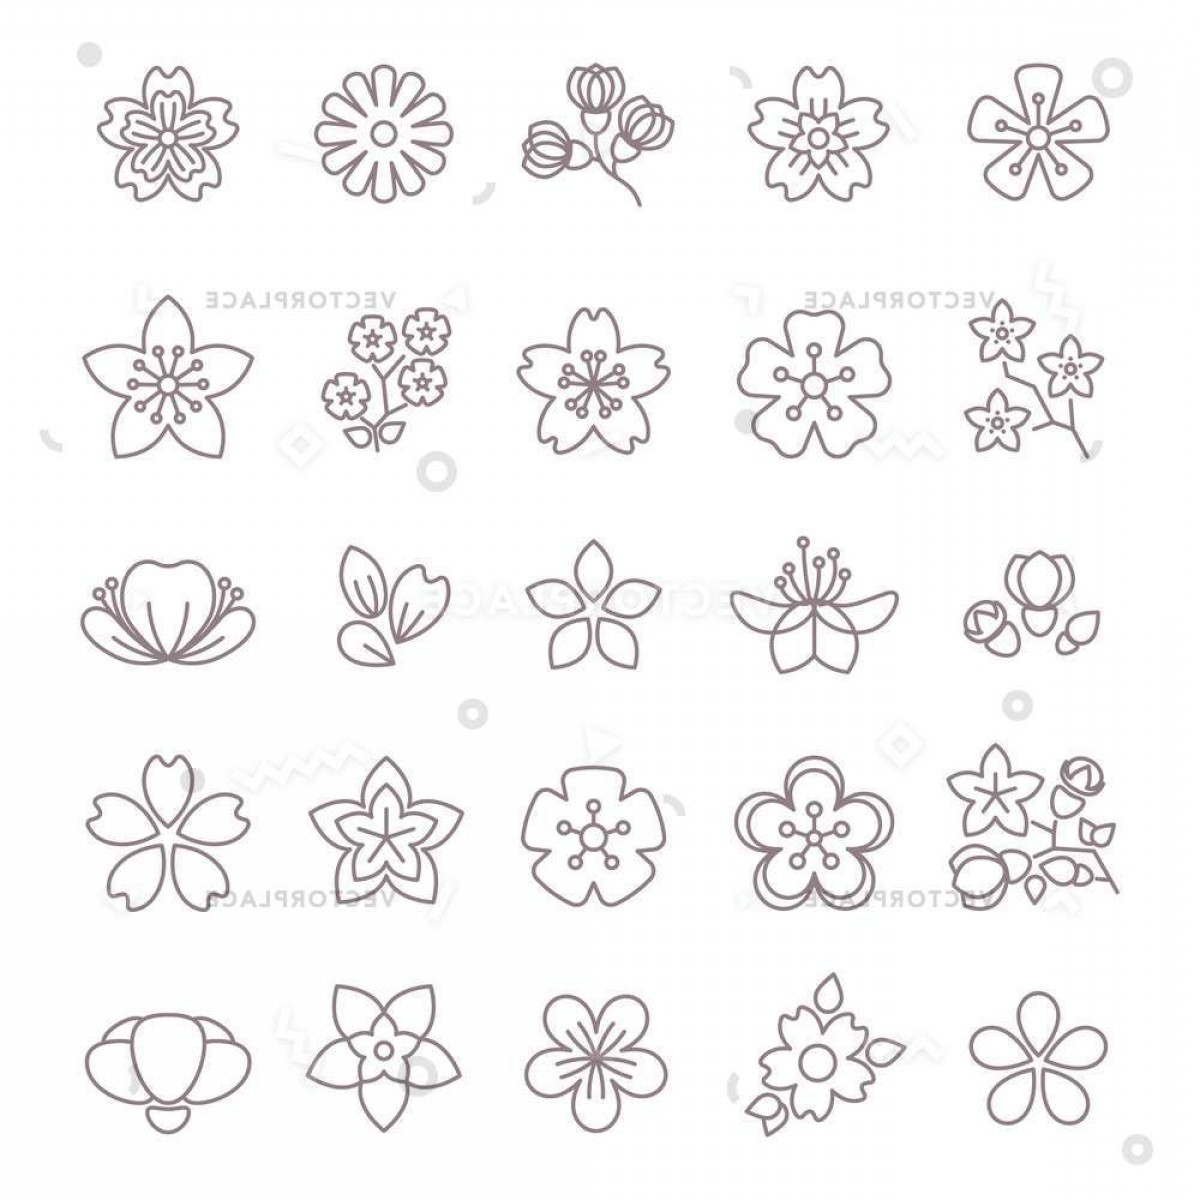 Floral Vector Icon: Spring Flower Thin Line Icons Set Vector Illustration